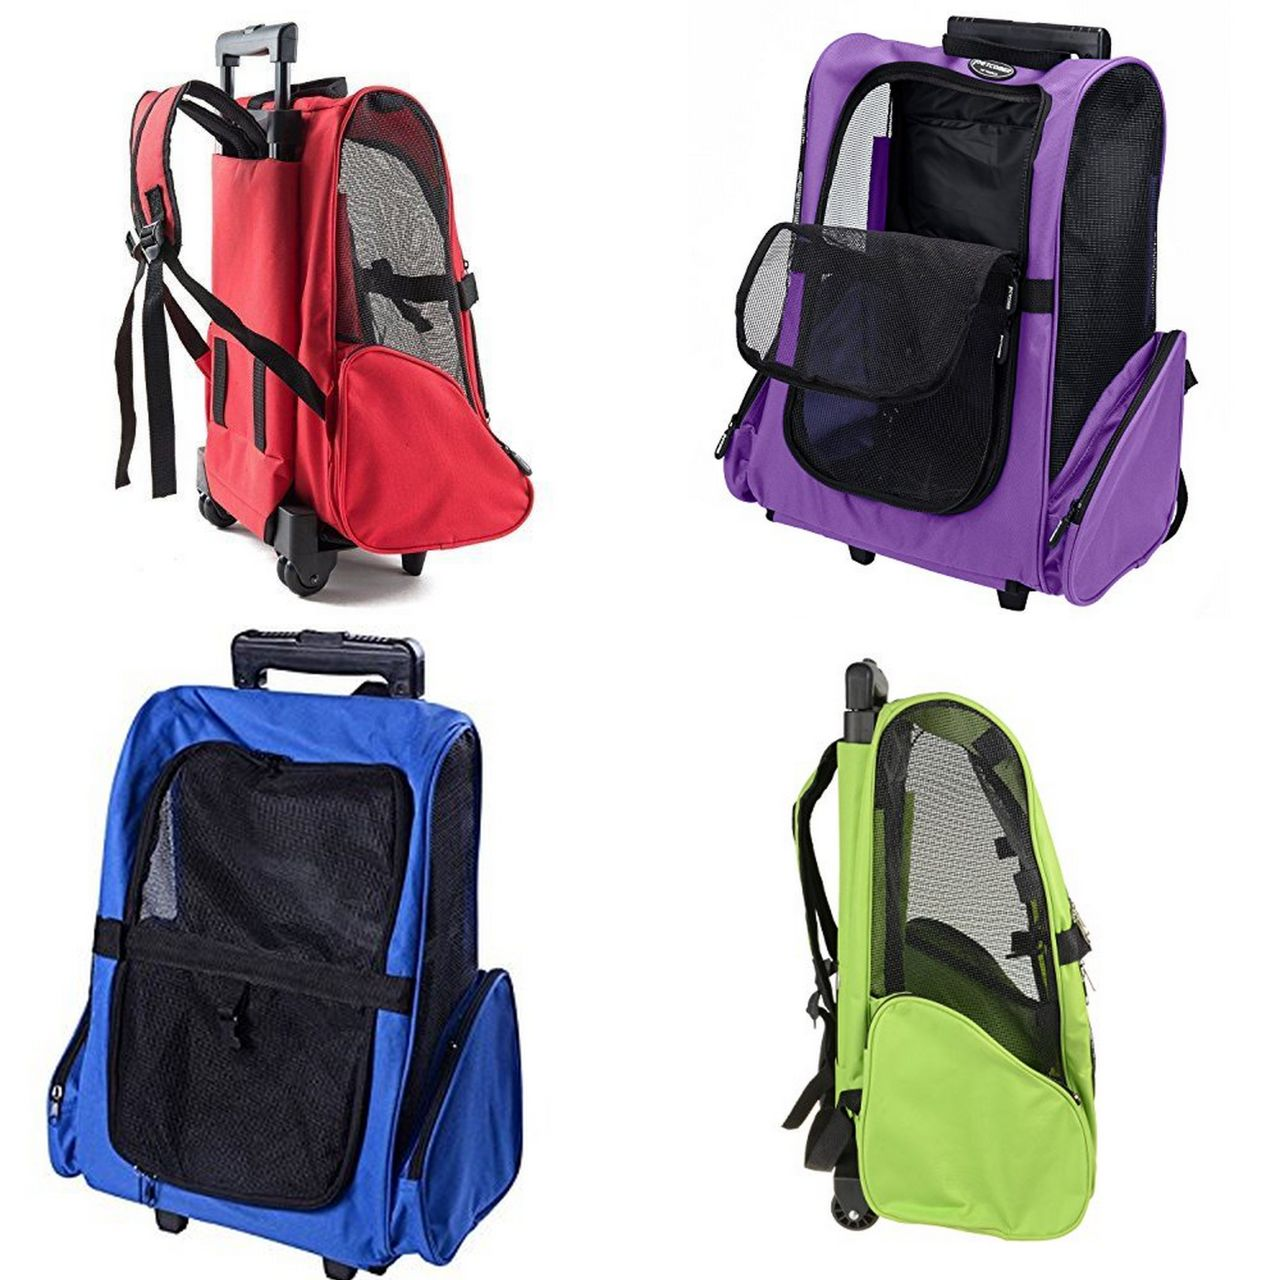 Backpack Trolley bag (Violet)